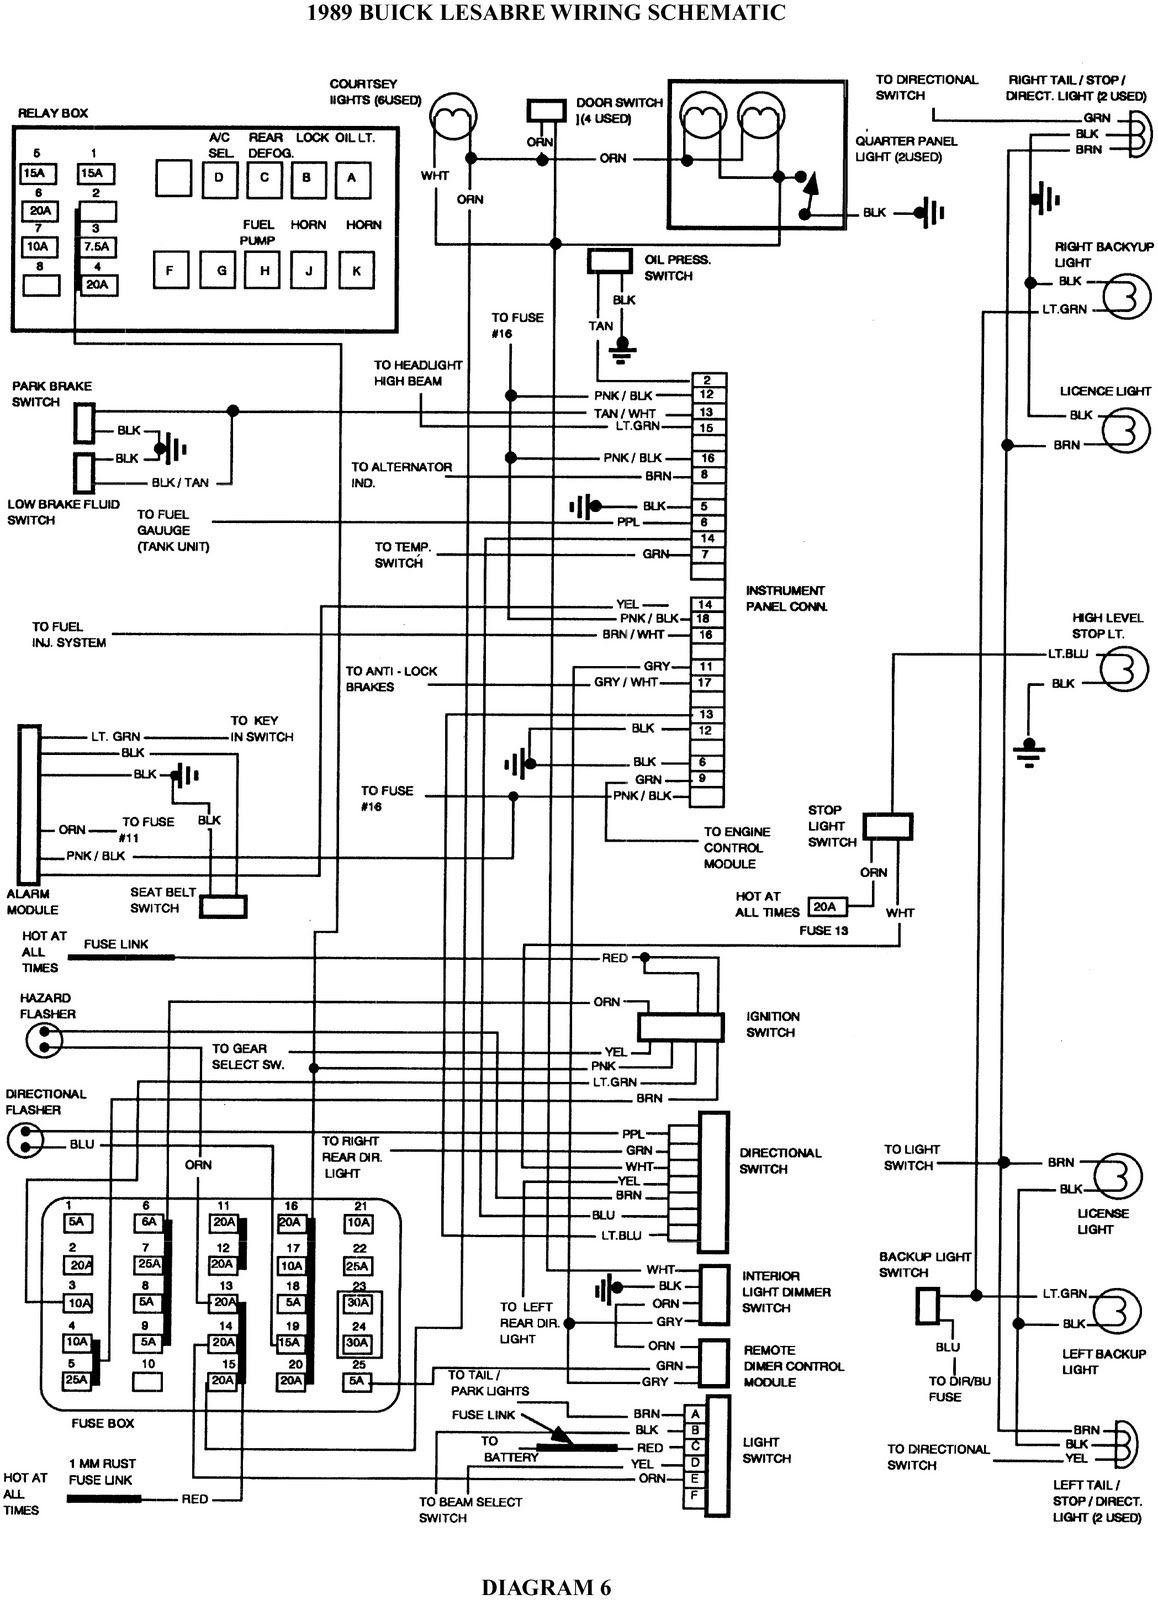 ignition switch wiring diagram for a 2002 buick century - wiring diagram  prev please-temple - please-temple.mabioxfood.fr  mabioxfood.fr